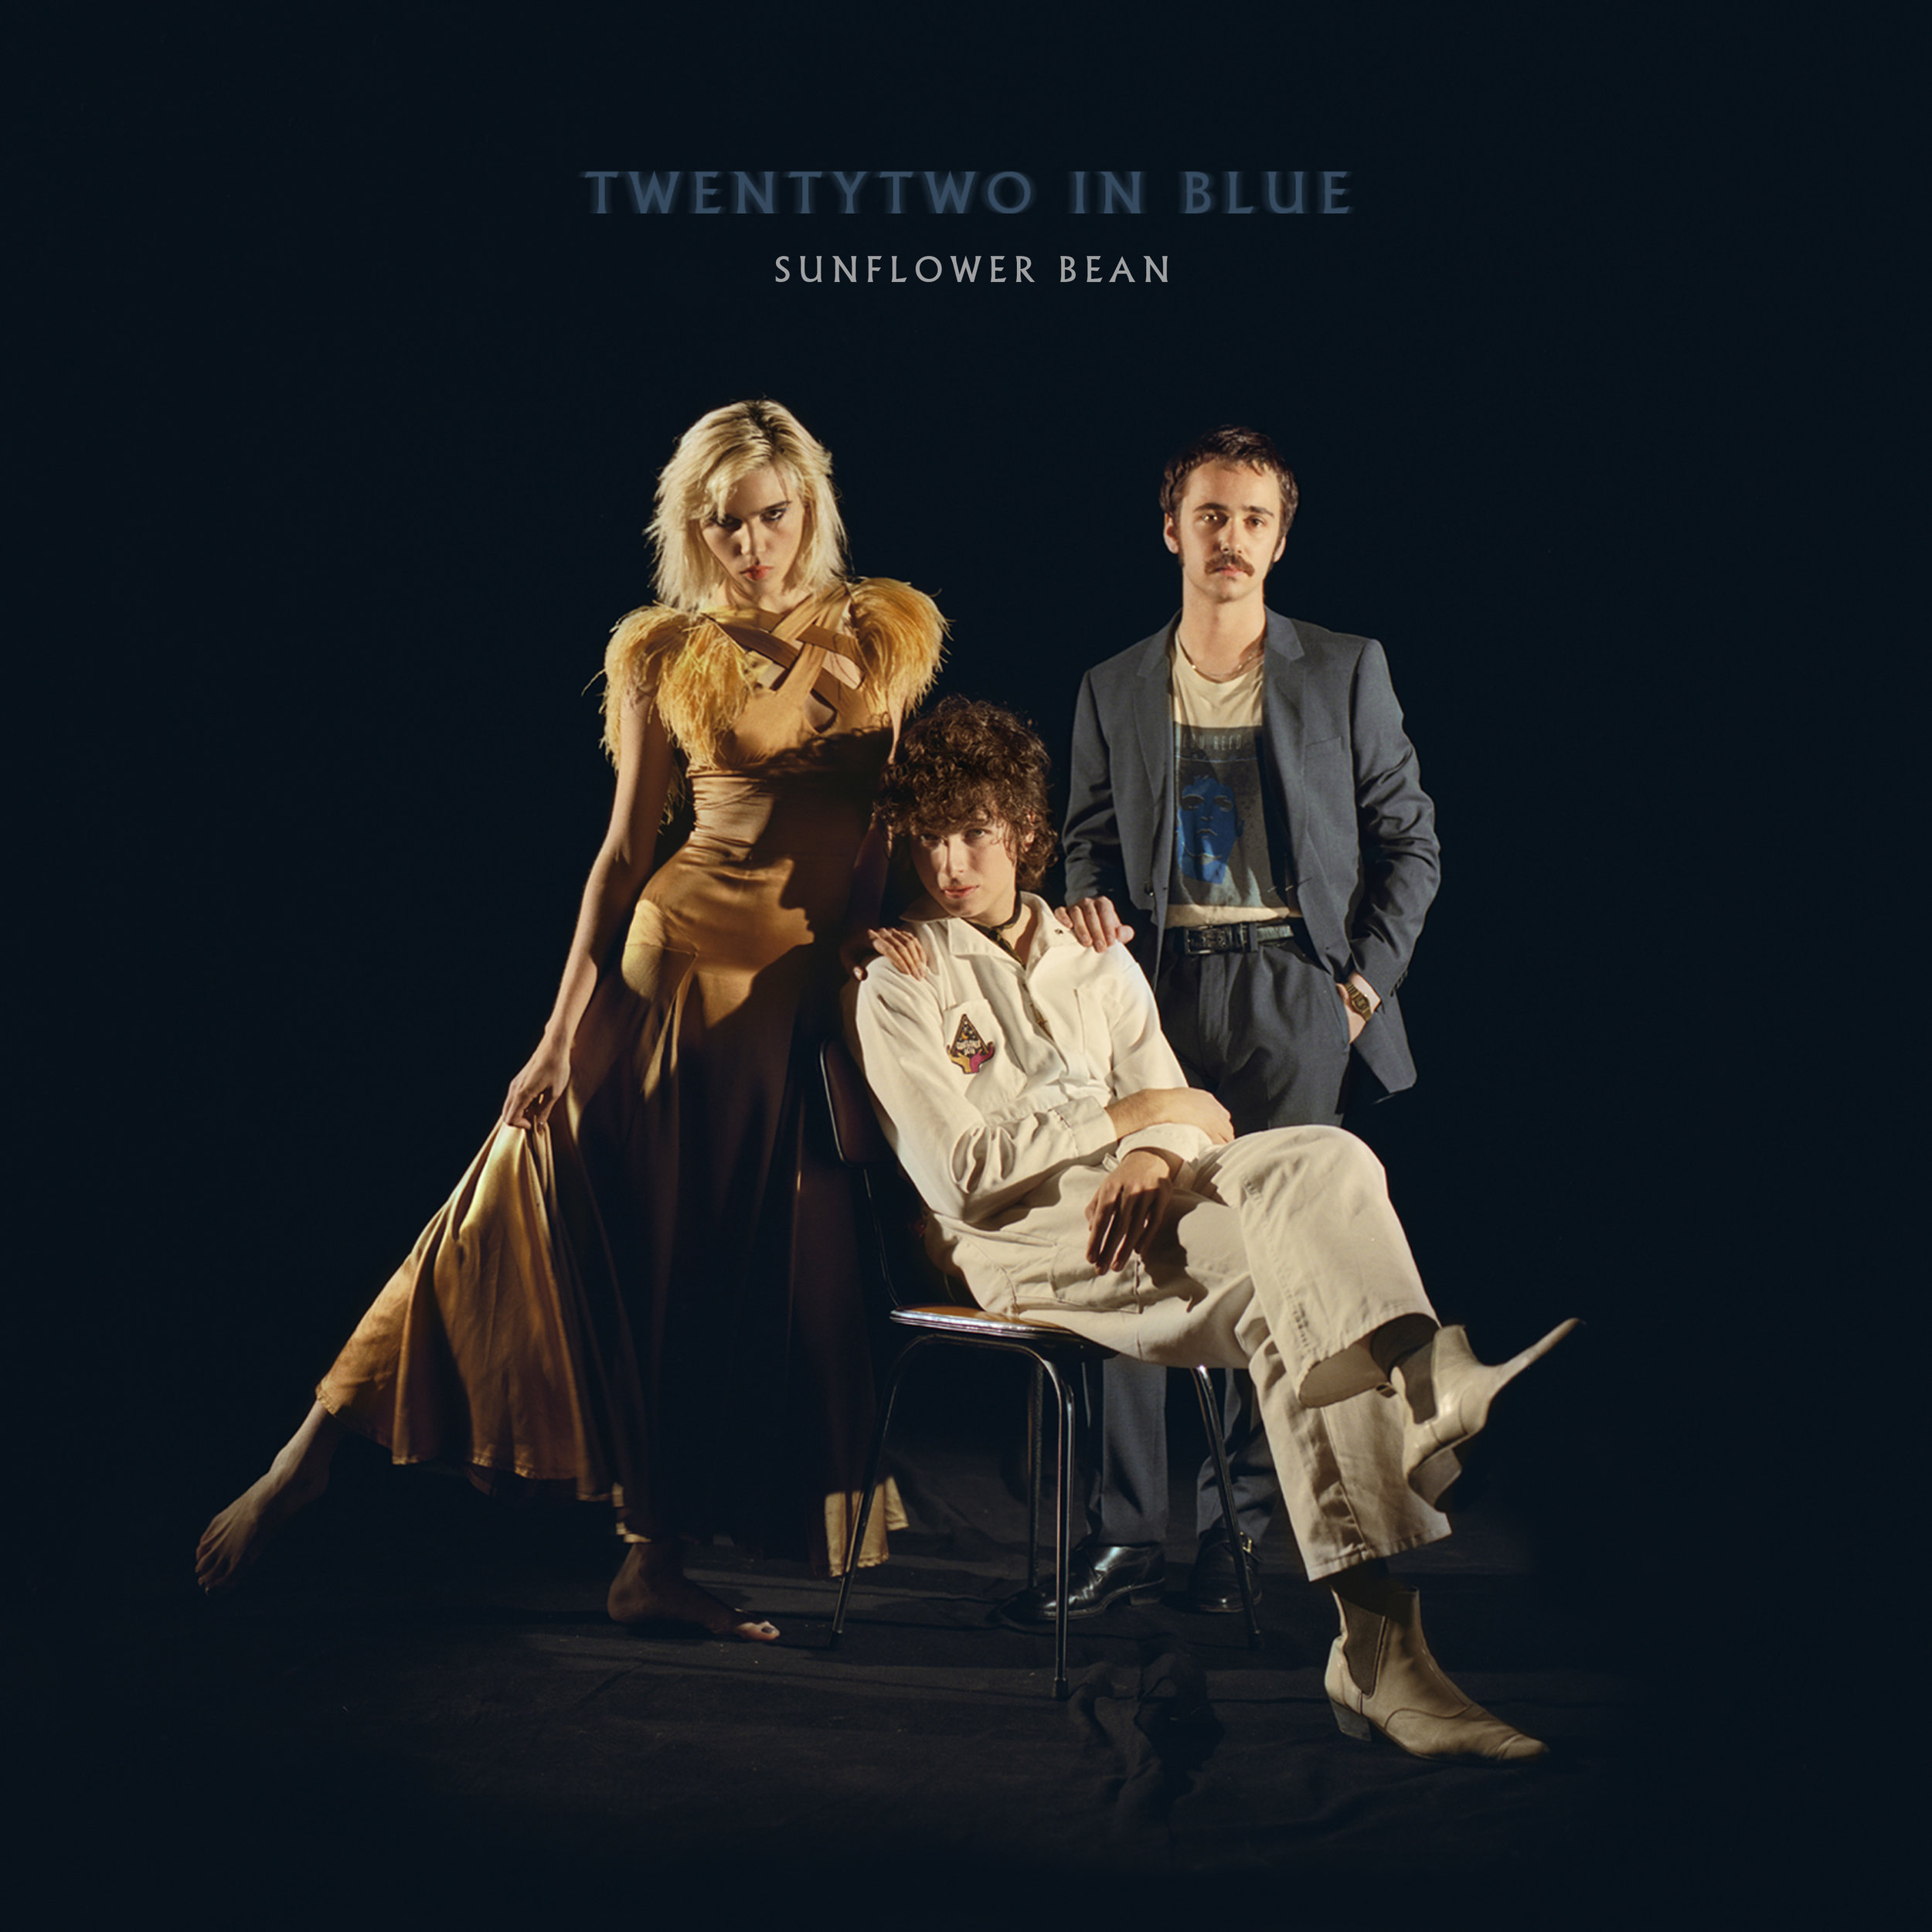 Sunflower Bean 'Twentytwo In Blue'